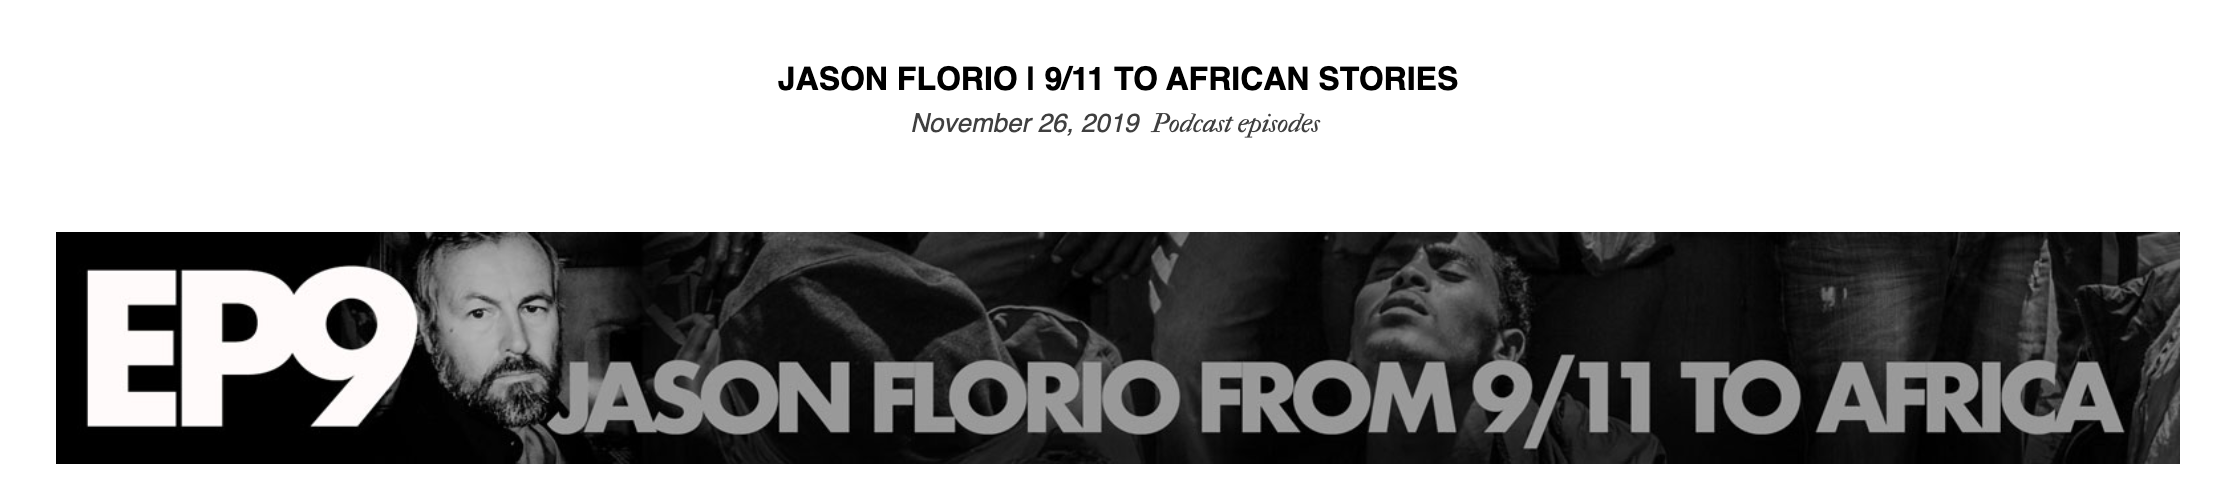 JASON FLORIO | 9/11 TO AFRICAN STORIES November 26, 2019 Podcast episodes